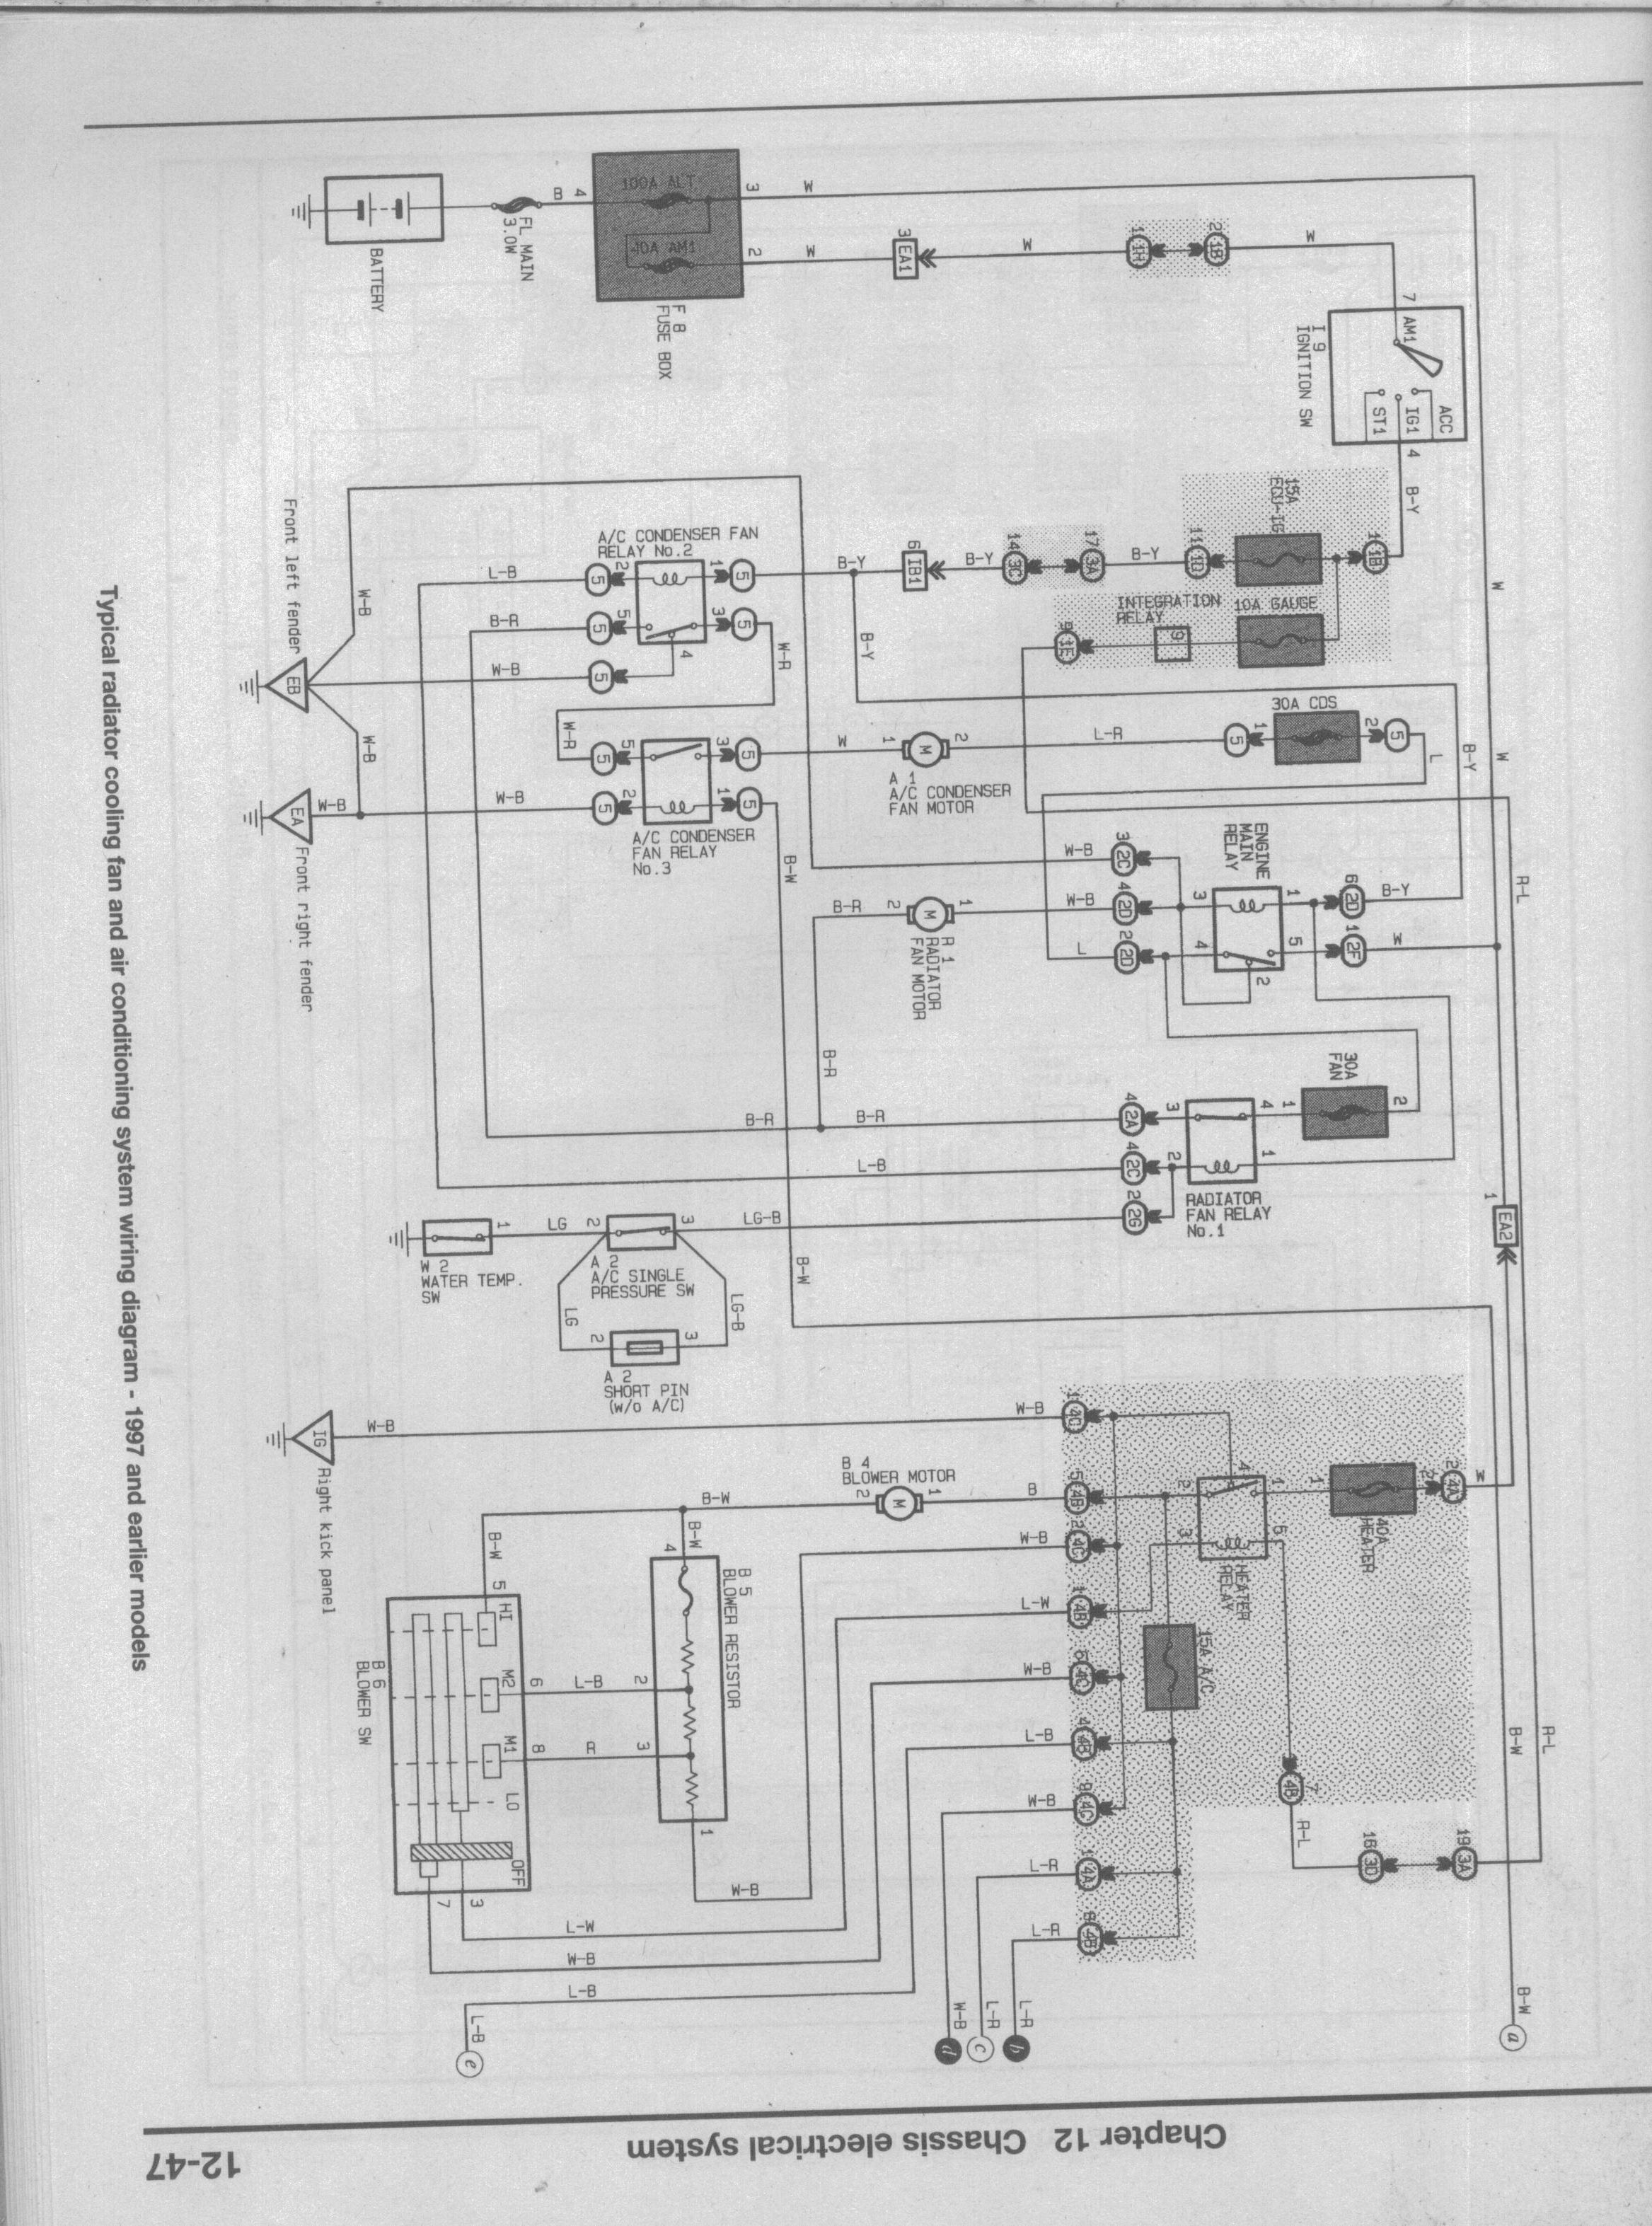 Air conditioner: BASIC CAR AC ELECTRICAL DIAGRAM